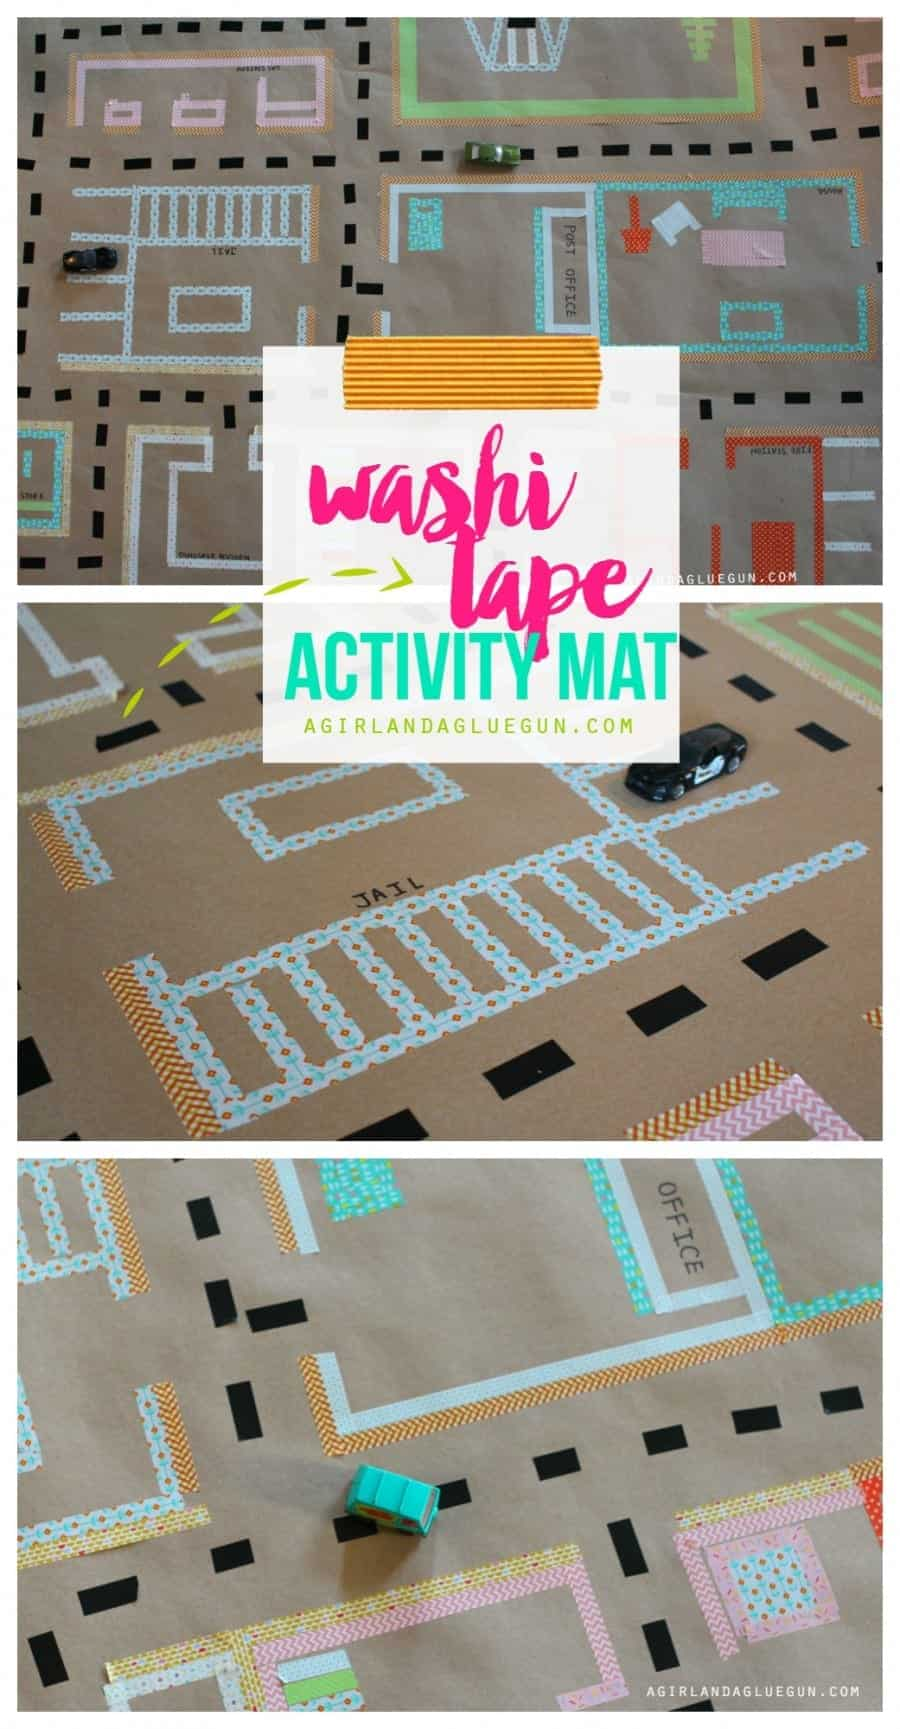 washi tape activity mat for kids